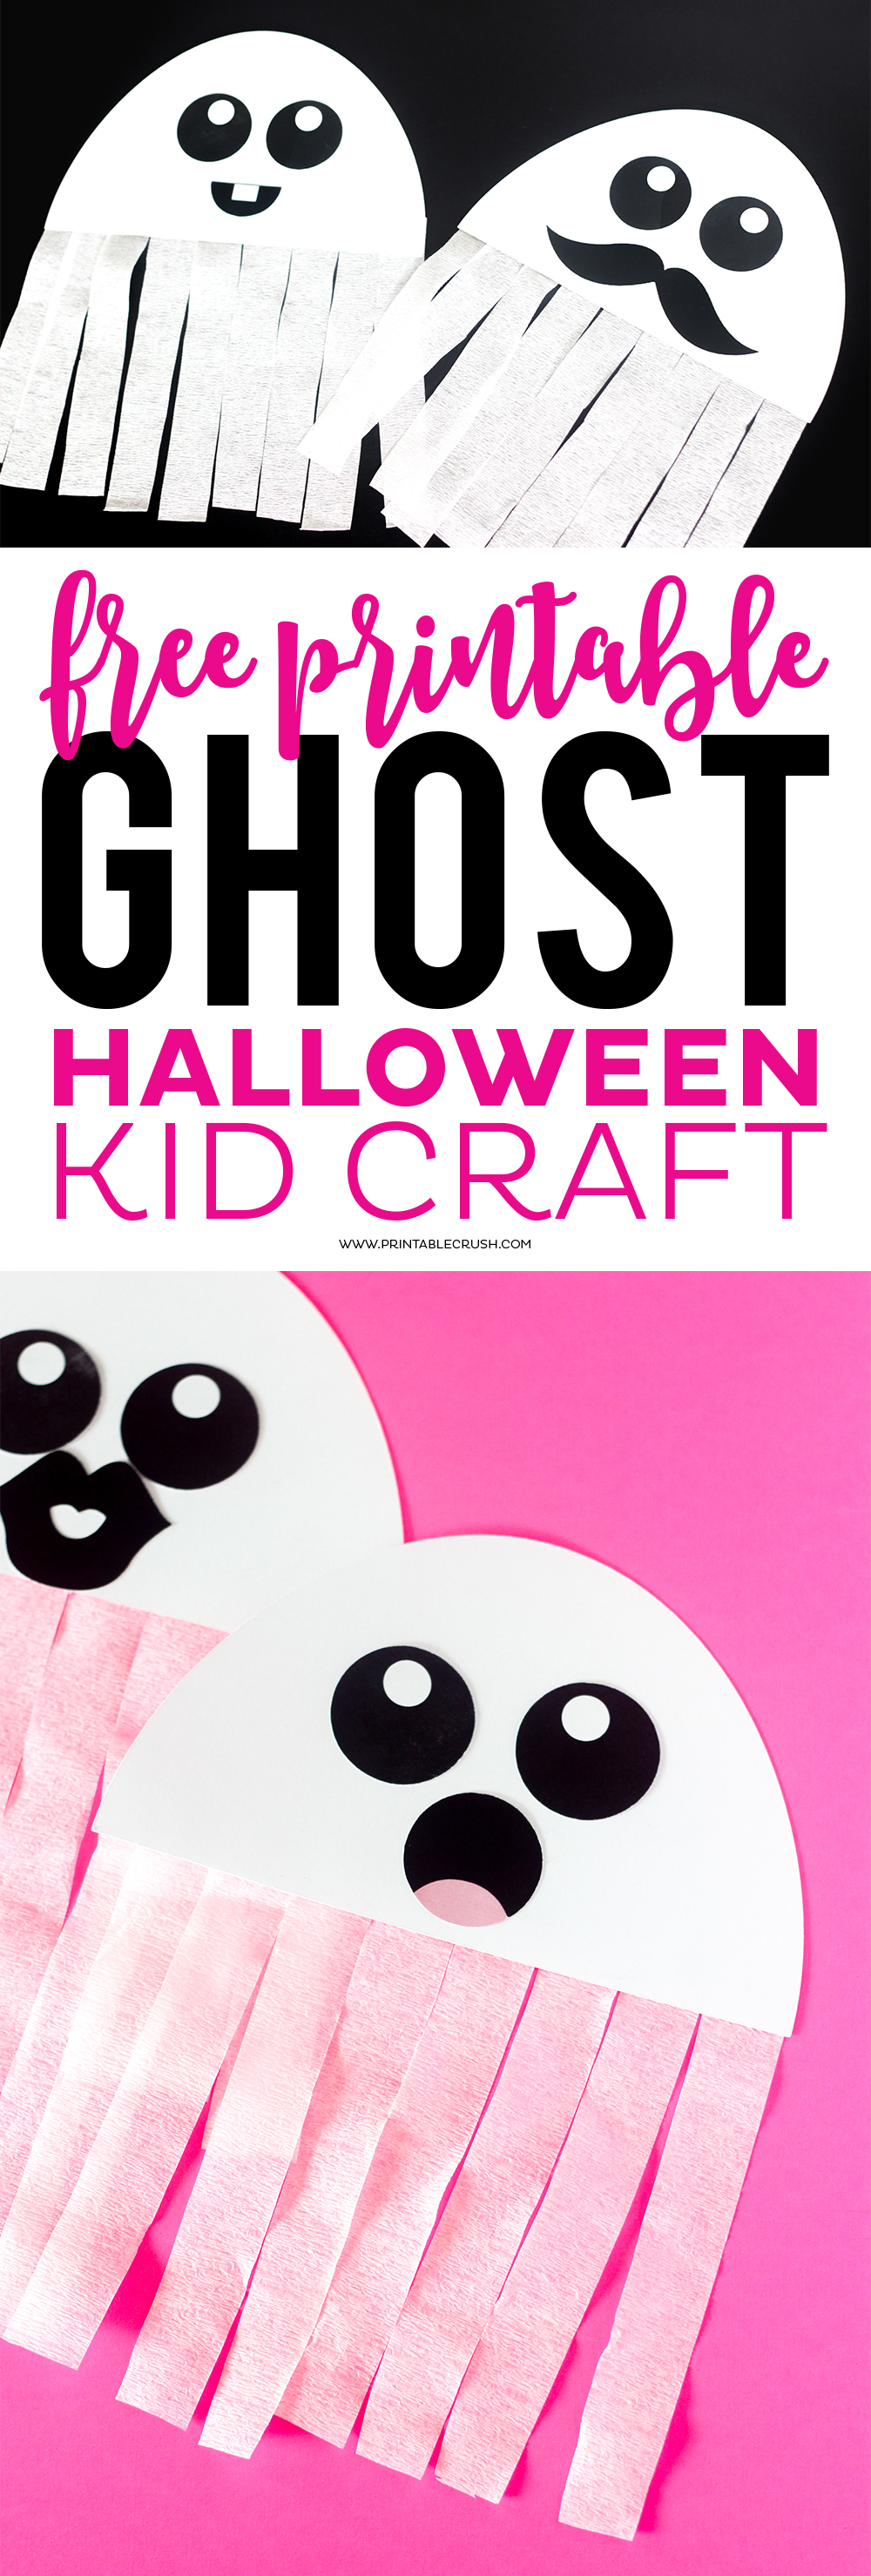 image relating to Printable Halloween Craft identified as Absolutely free Printable Ghost Halloween Craft - Printable Crush